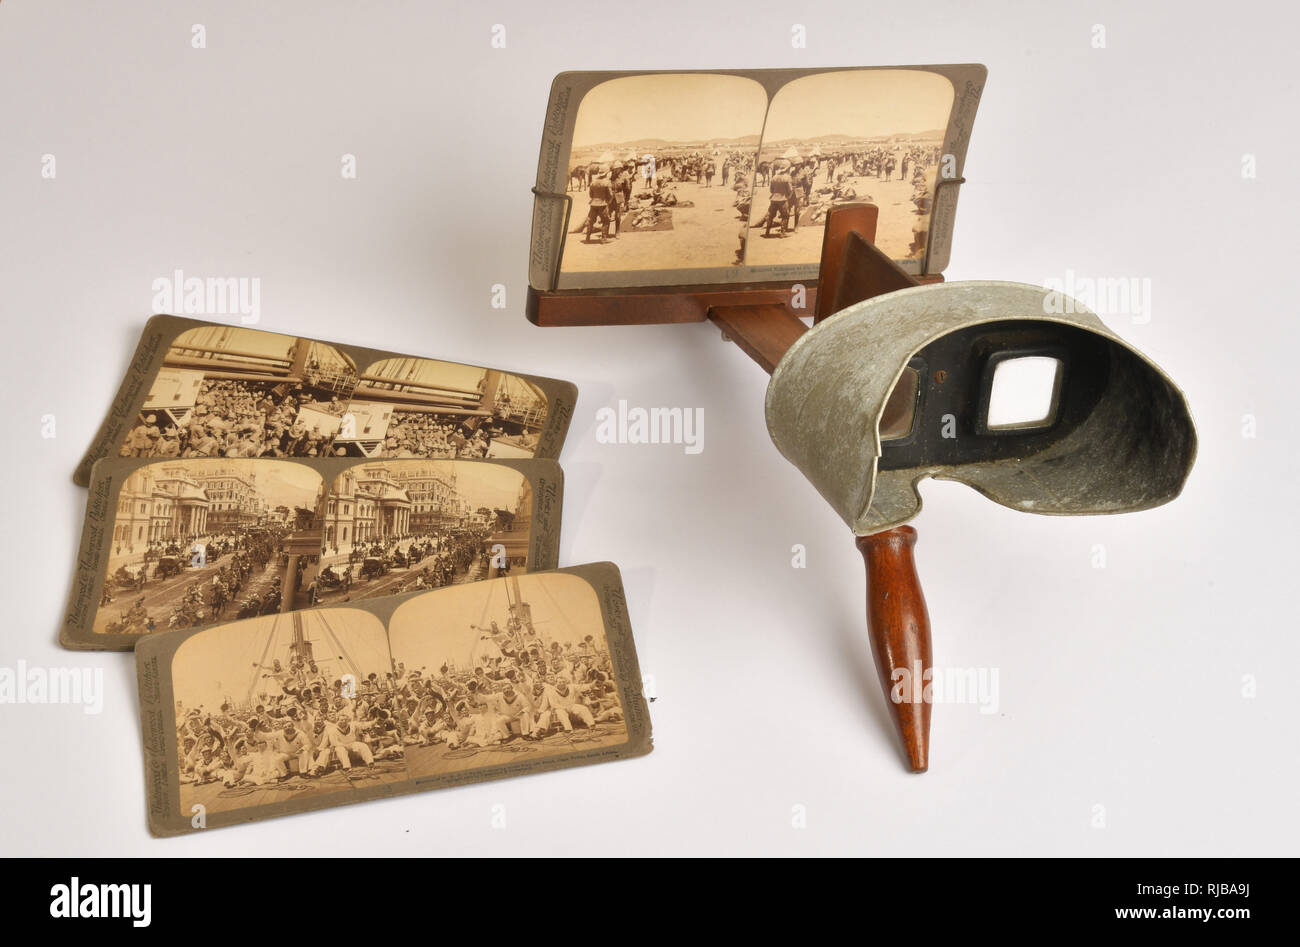 Victorian stereoscopic viewer with a view of troops in the South African War in the holder.Other cards in the set depicting that conflict. - Stock Image